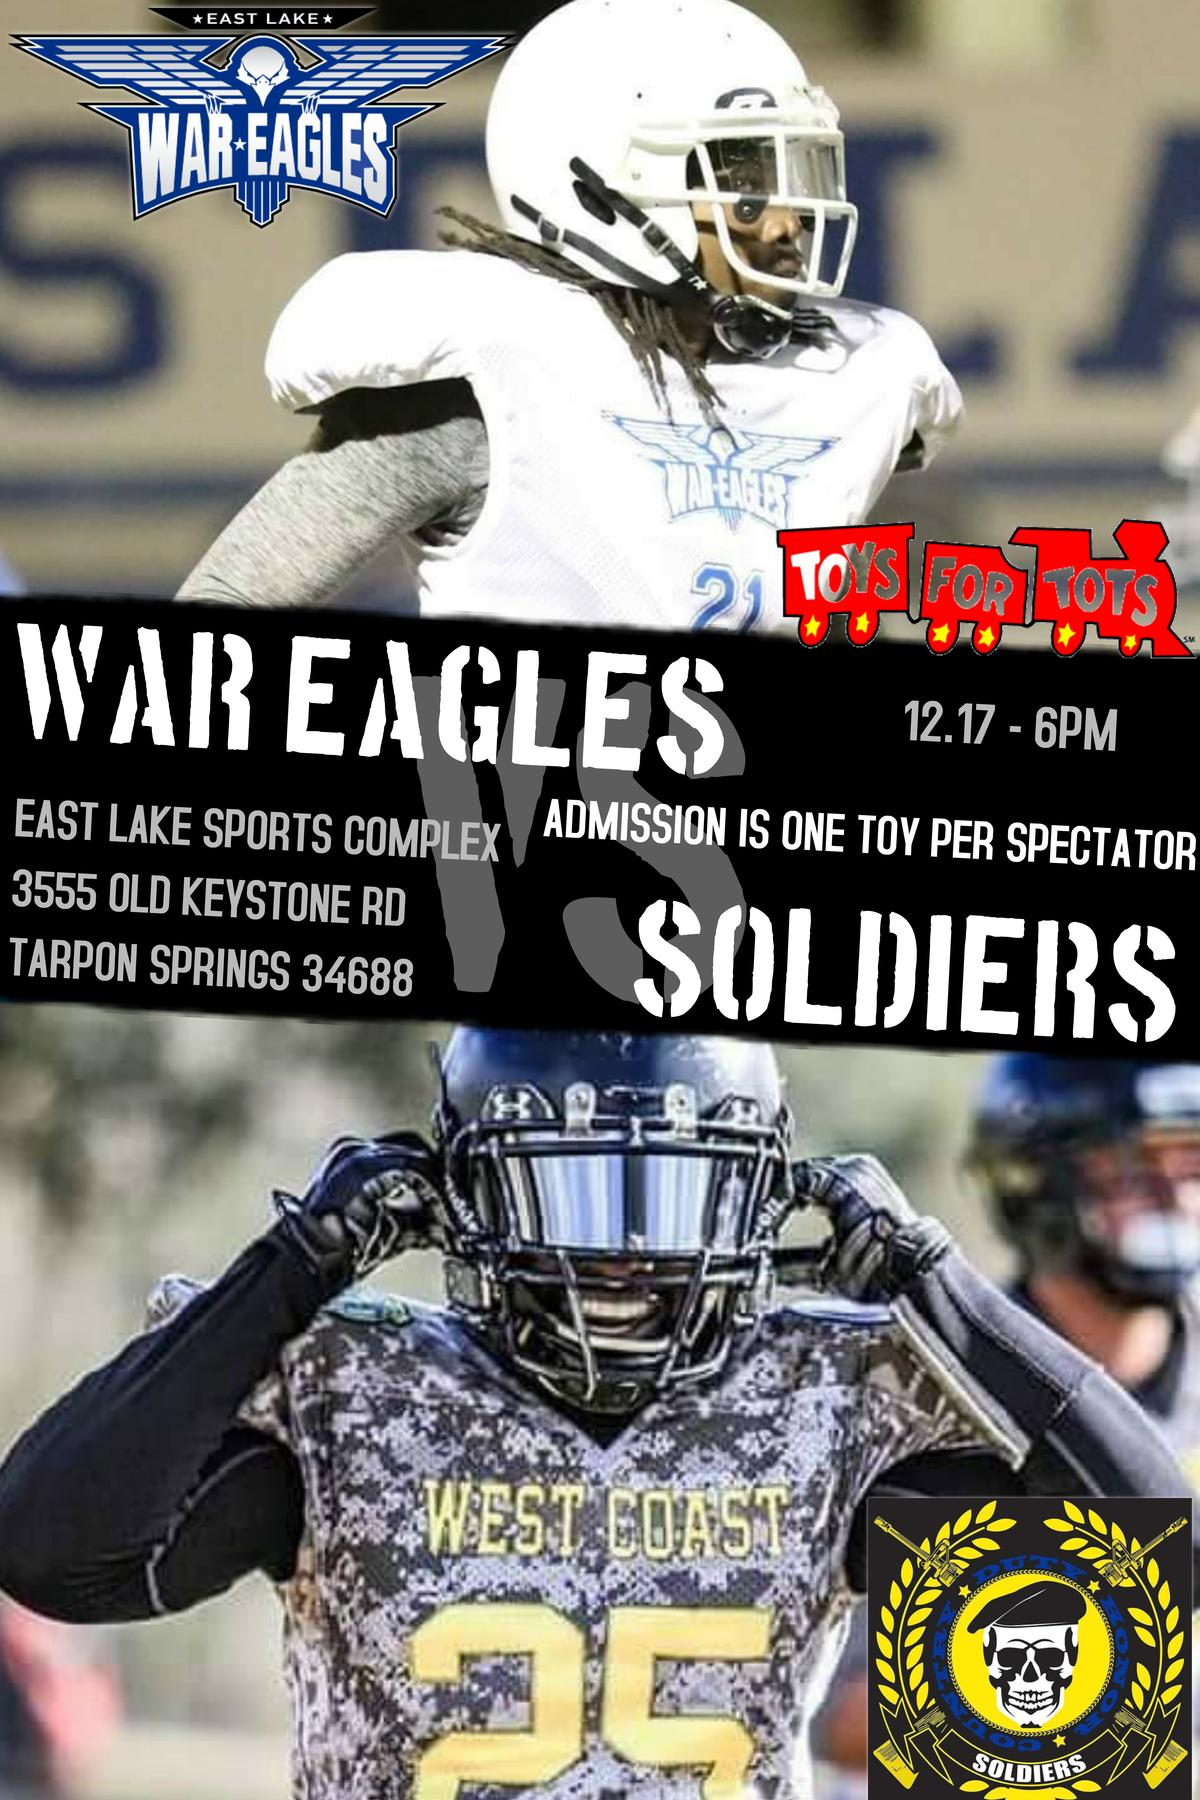 821c6db8ad5 2nd Annual Toys For Tots Game. Come support your War Eagles Football ...